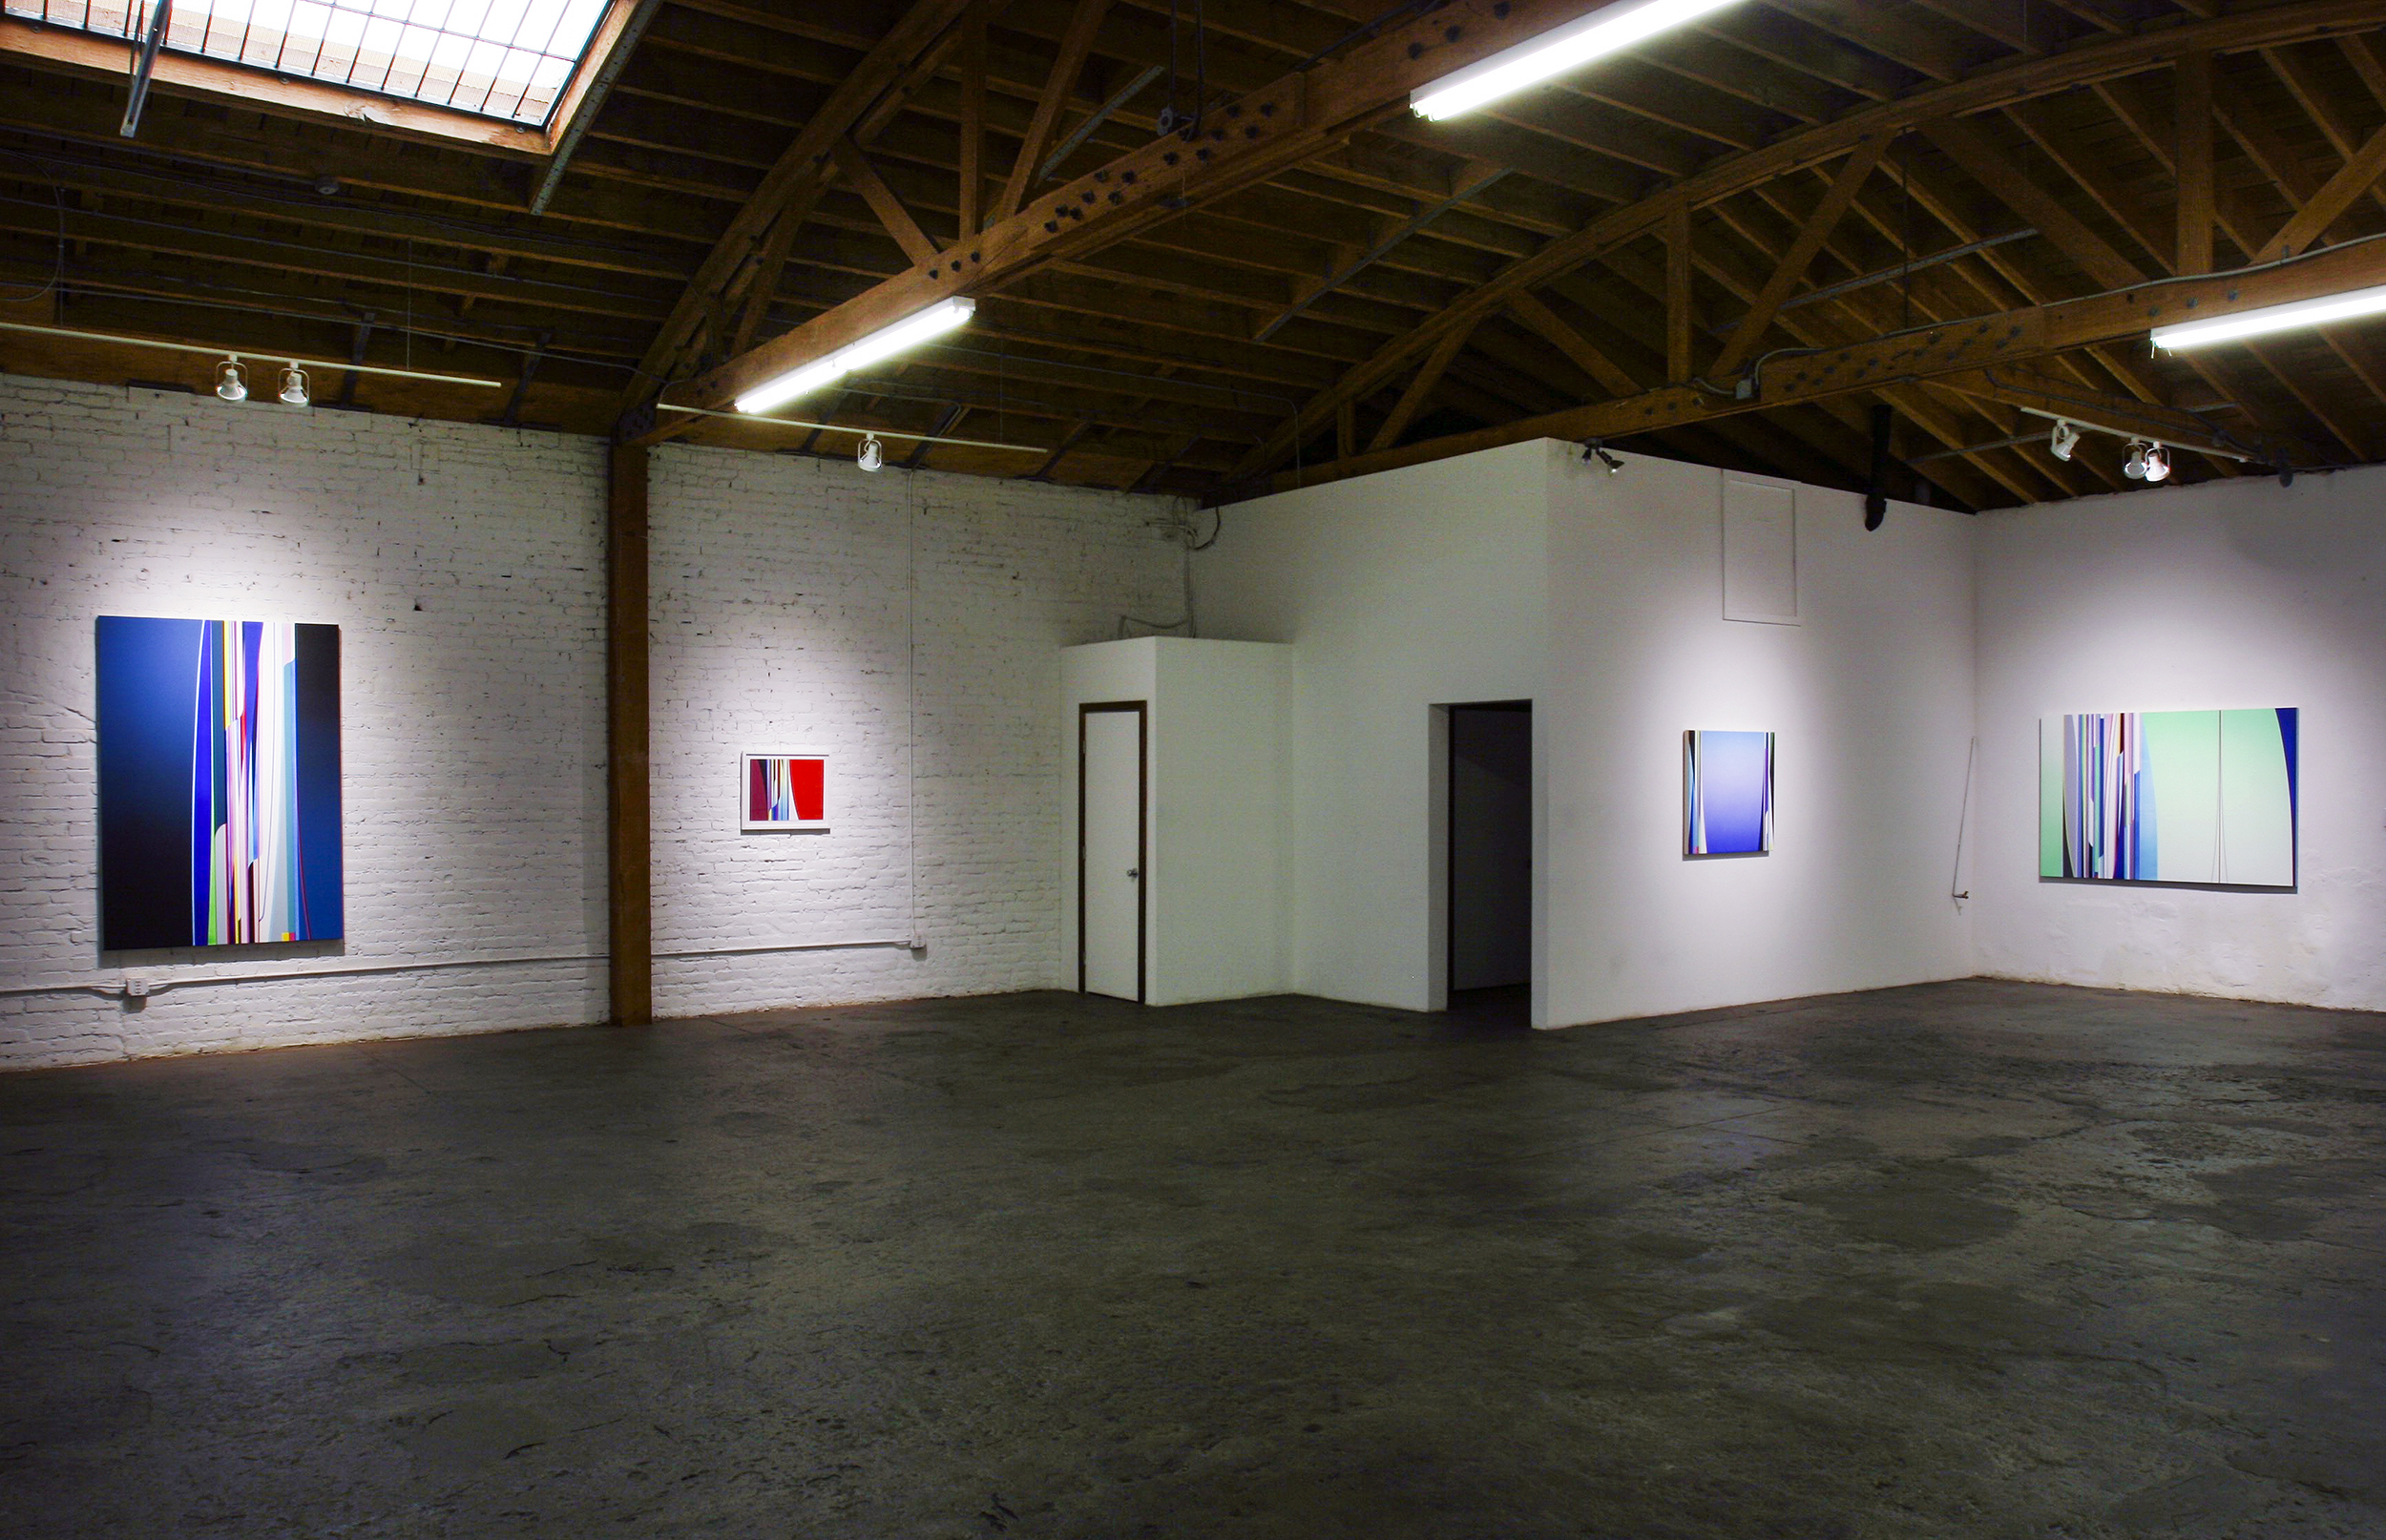 Left to Right: Dion Johnson, Disguise, 72 x 48 inches; Isotope, 16.25 x 20.75 inches; Zero Gravity, 32 x 36 inches; Terraformation, 48 x 72 inches